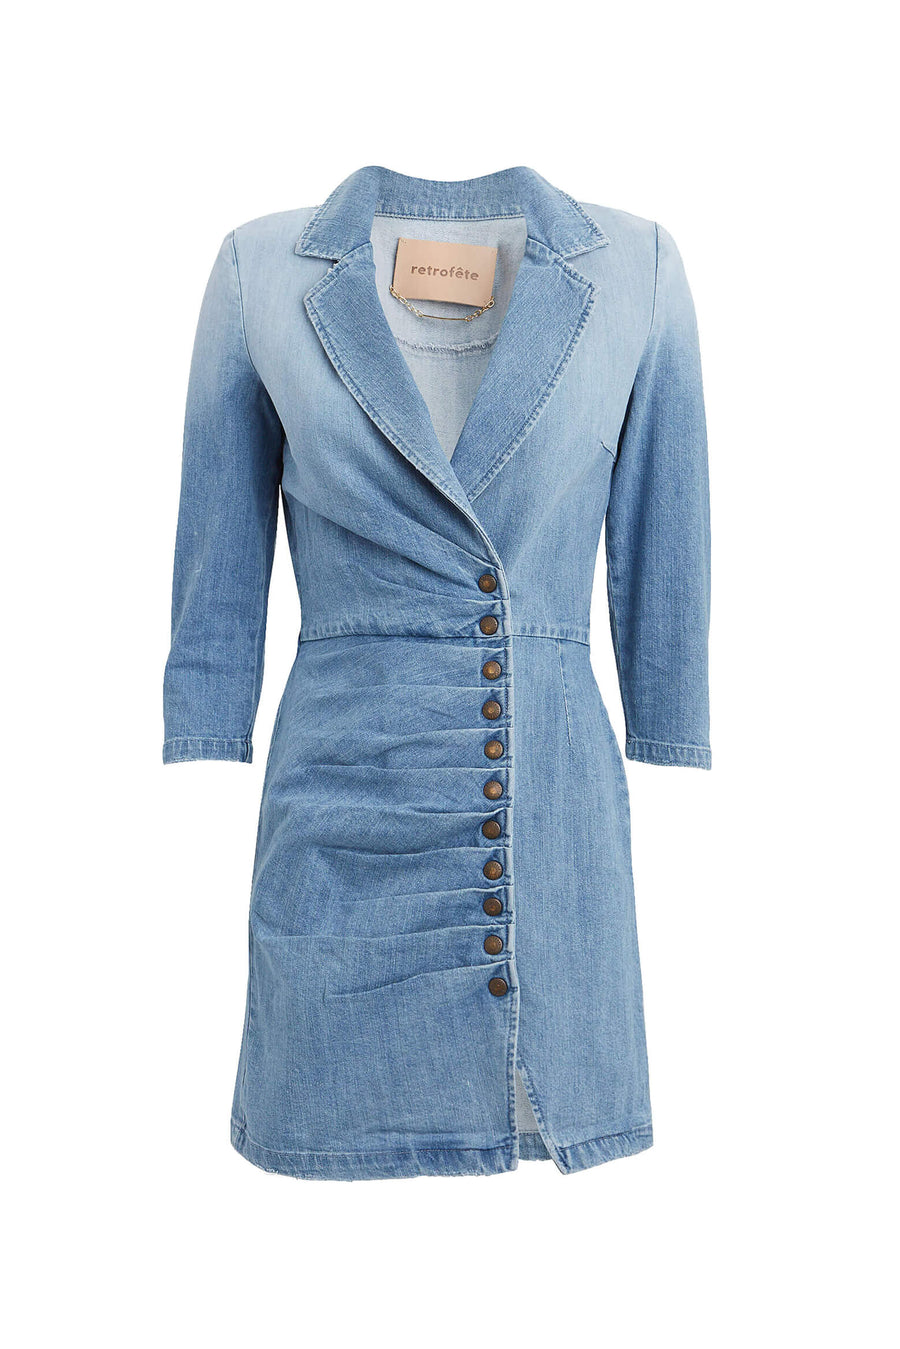 Retrofete-Willa-Dress-Light-Denim-The-New-Trend